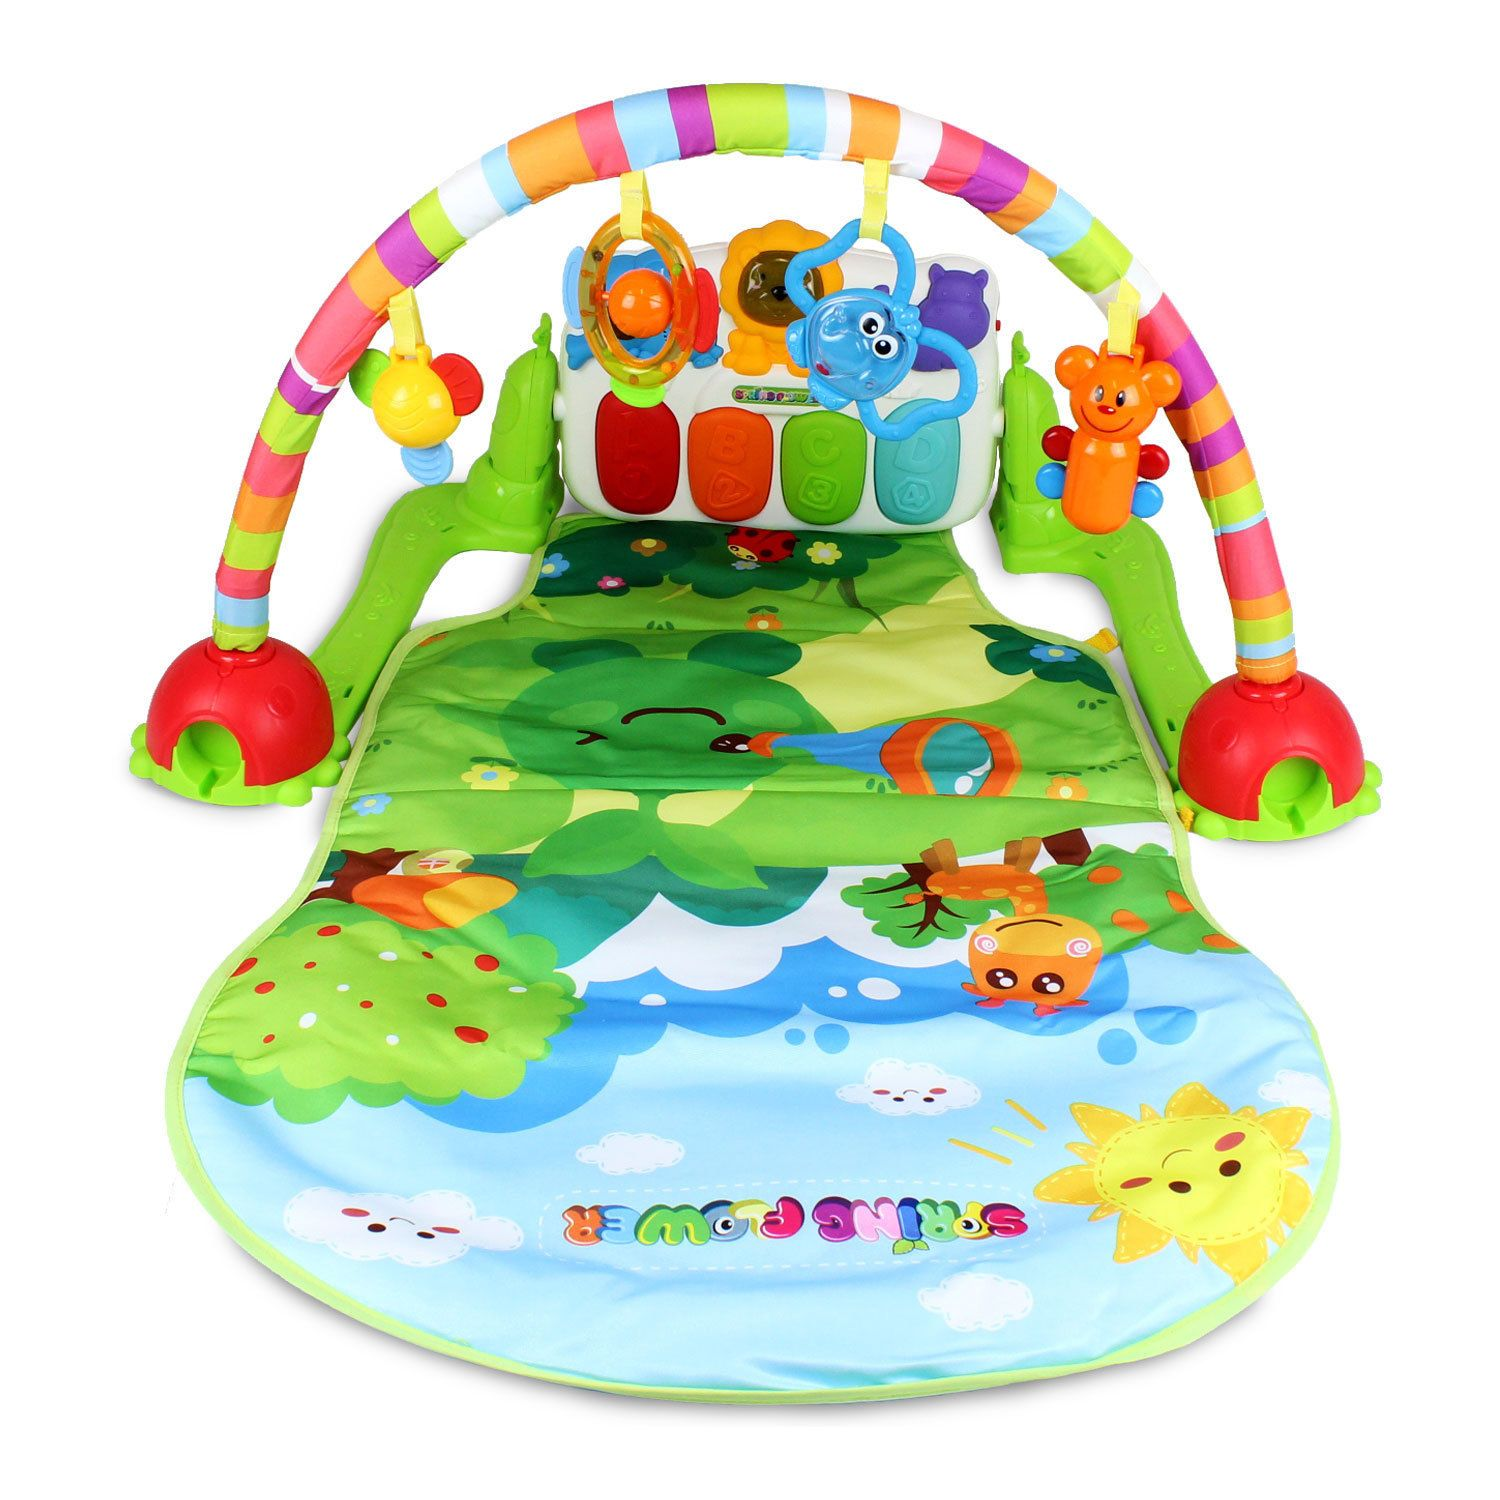 Pin by BTTF Products on Baby Developmental Toys Baby gym